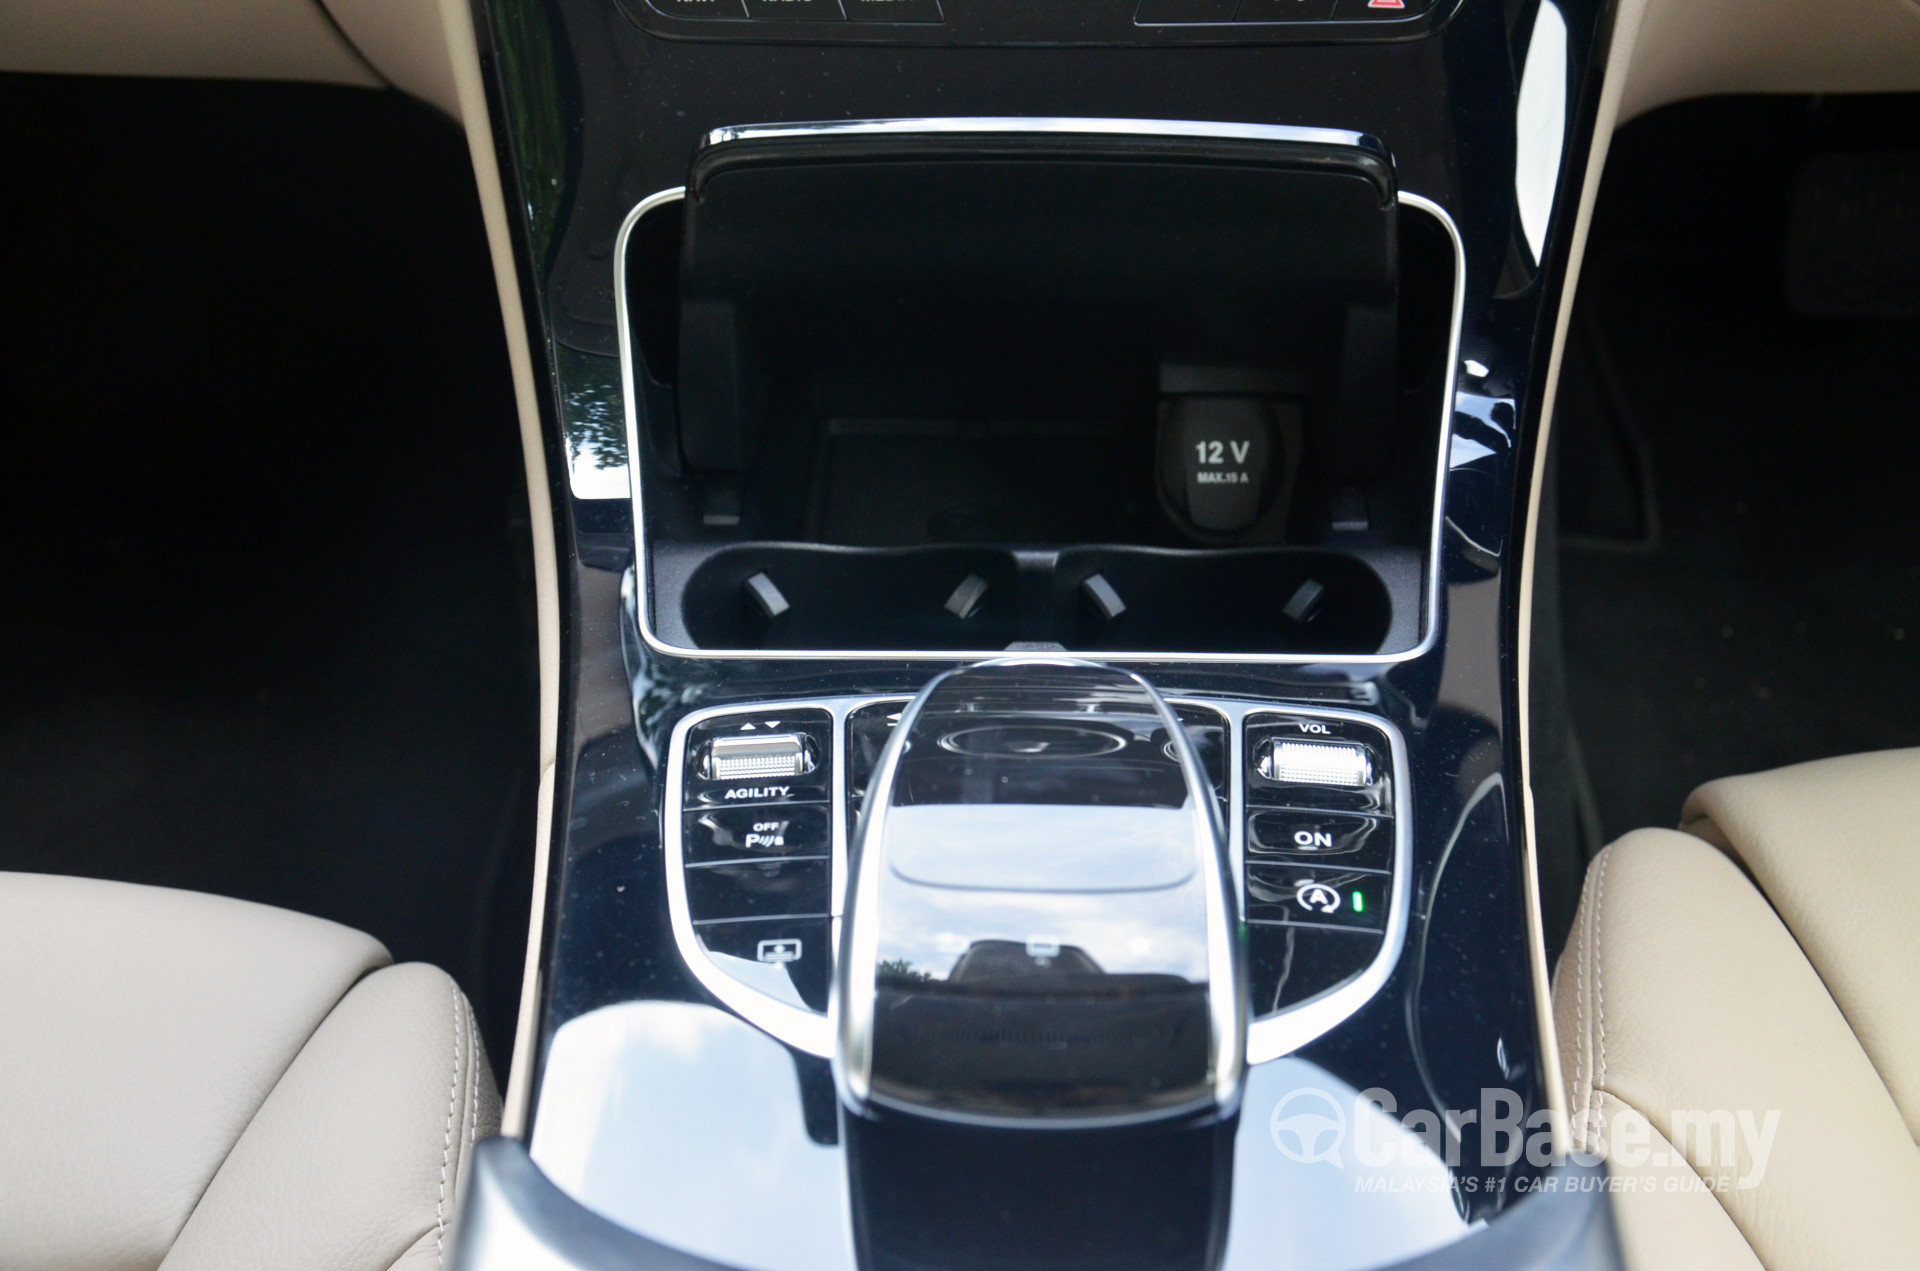 Mercedes benz c class w205 2014 interior image 17653 in malaysia reviews specs prices - 2014 mercedes c class interior ...